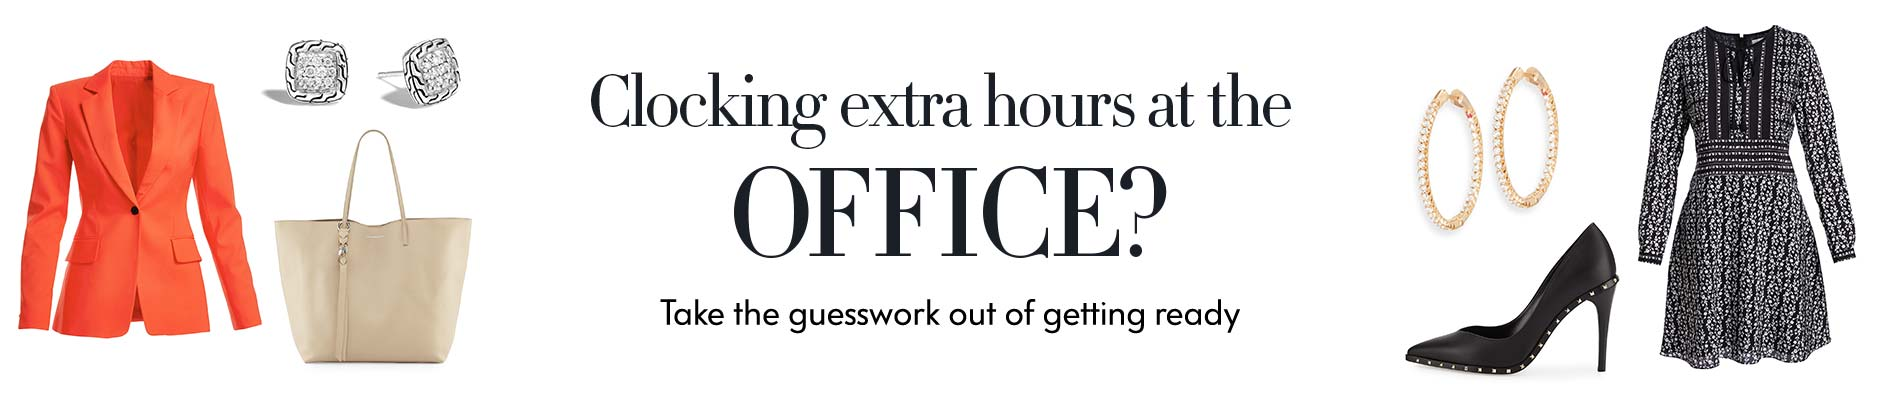 clocking extra hours at the office take guesswork out of getting ready pictures for